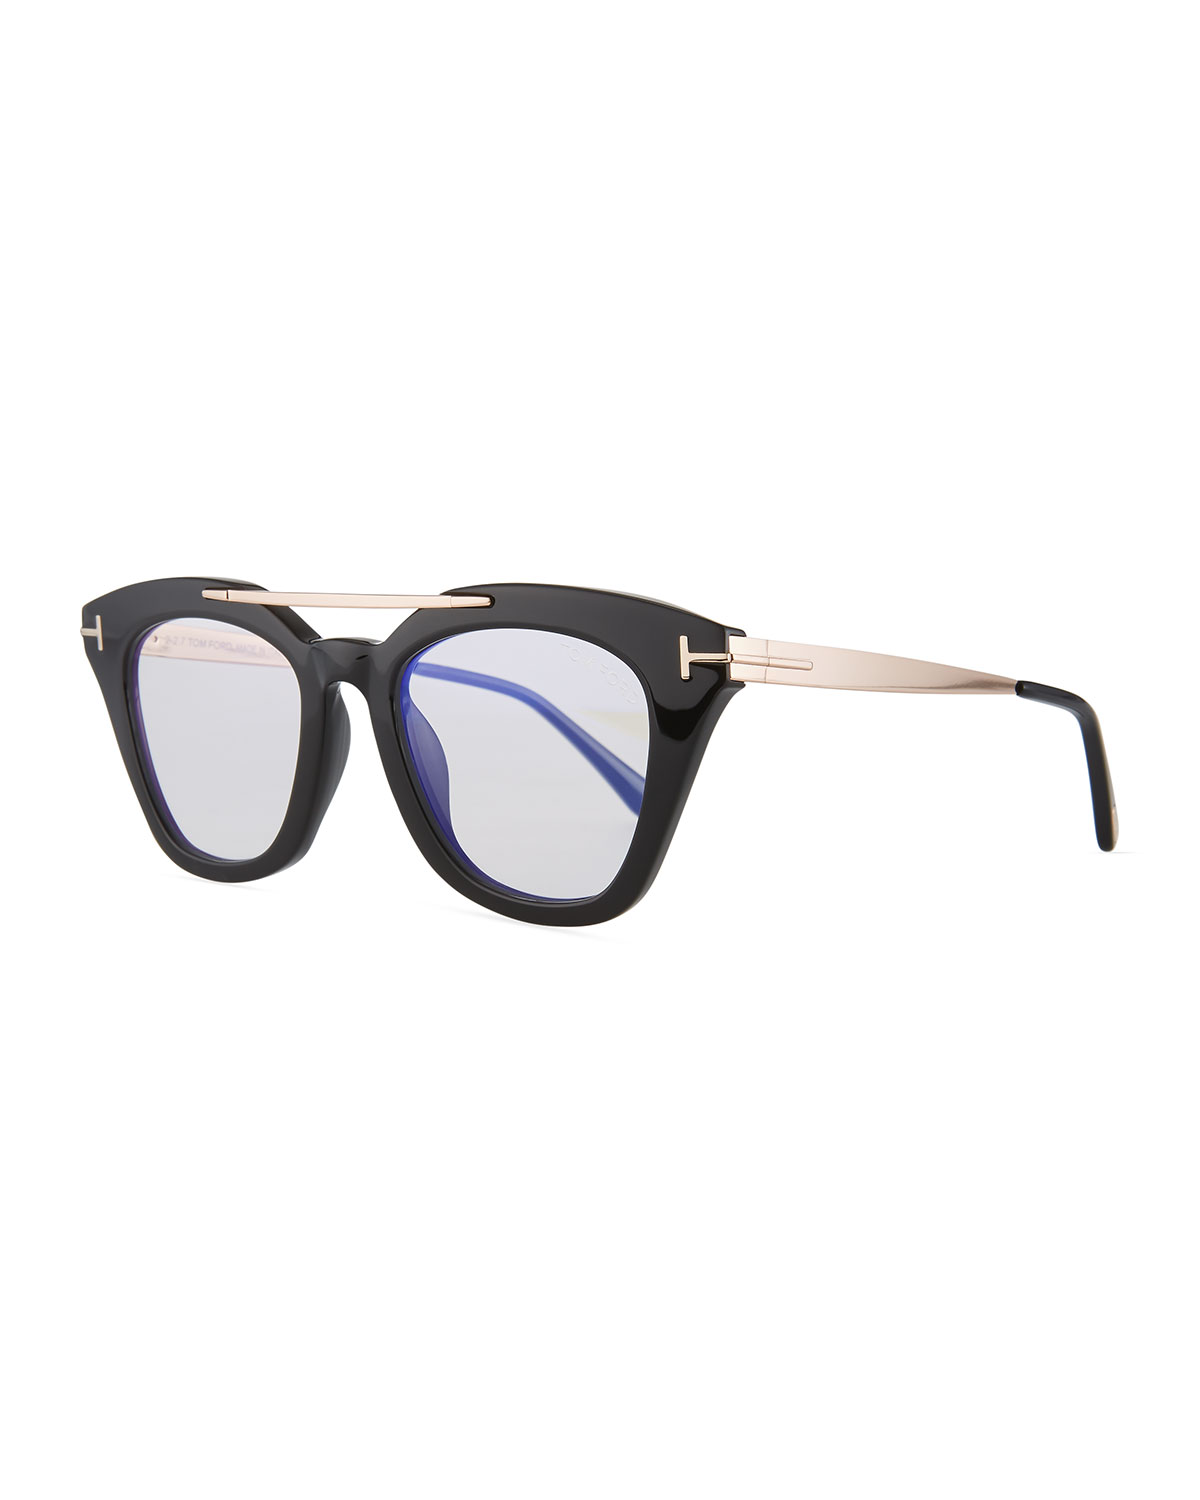 9b3371dbc1 Quick Look. TOM FORD · Anna Square Acetate Metal Sunglasses